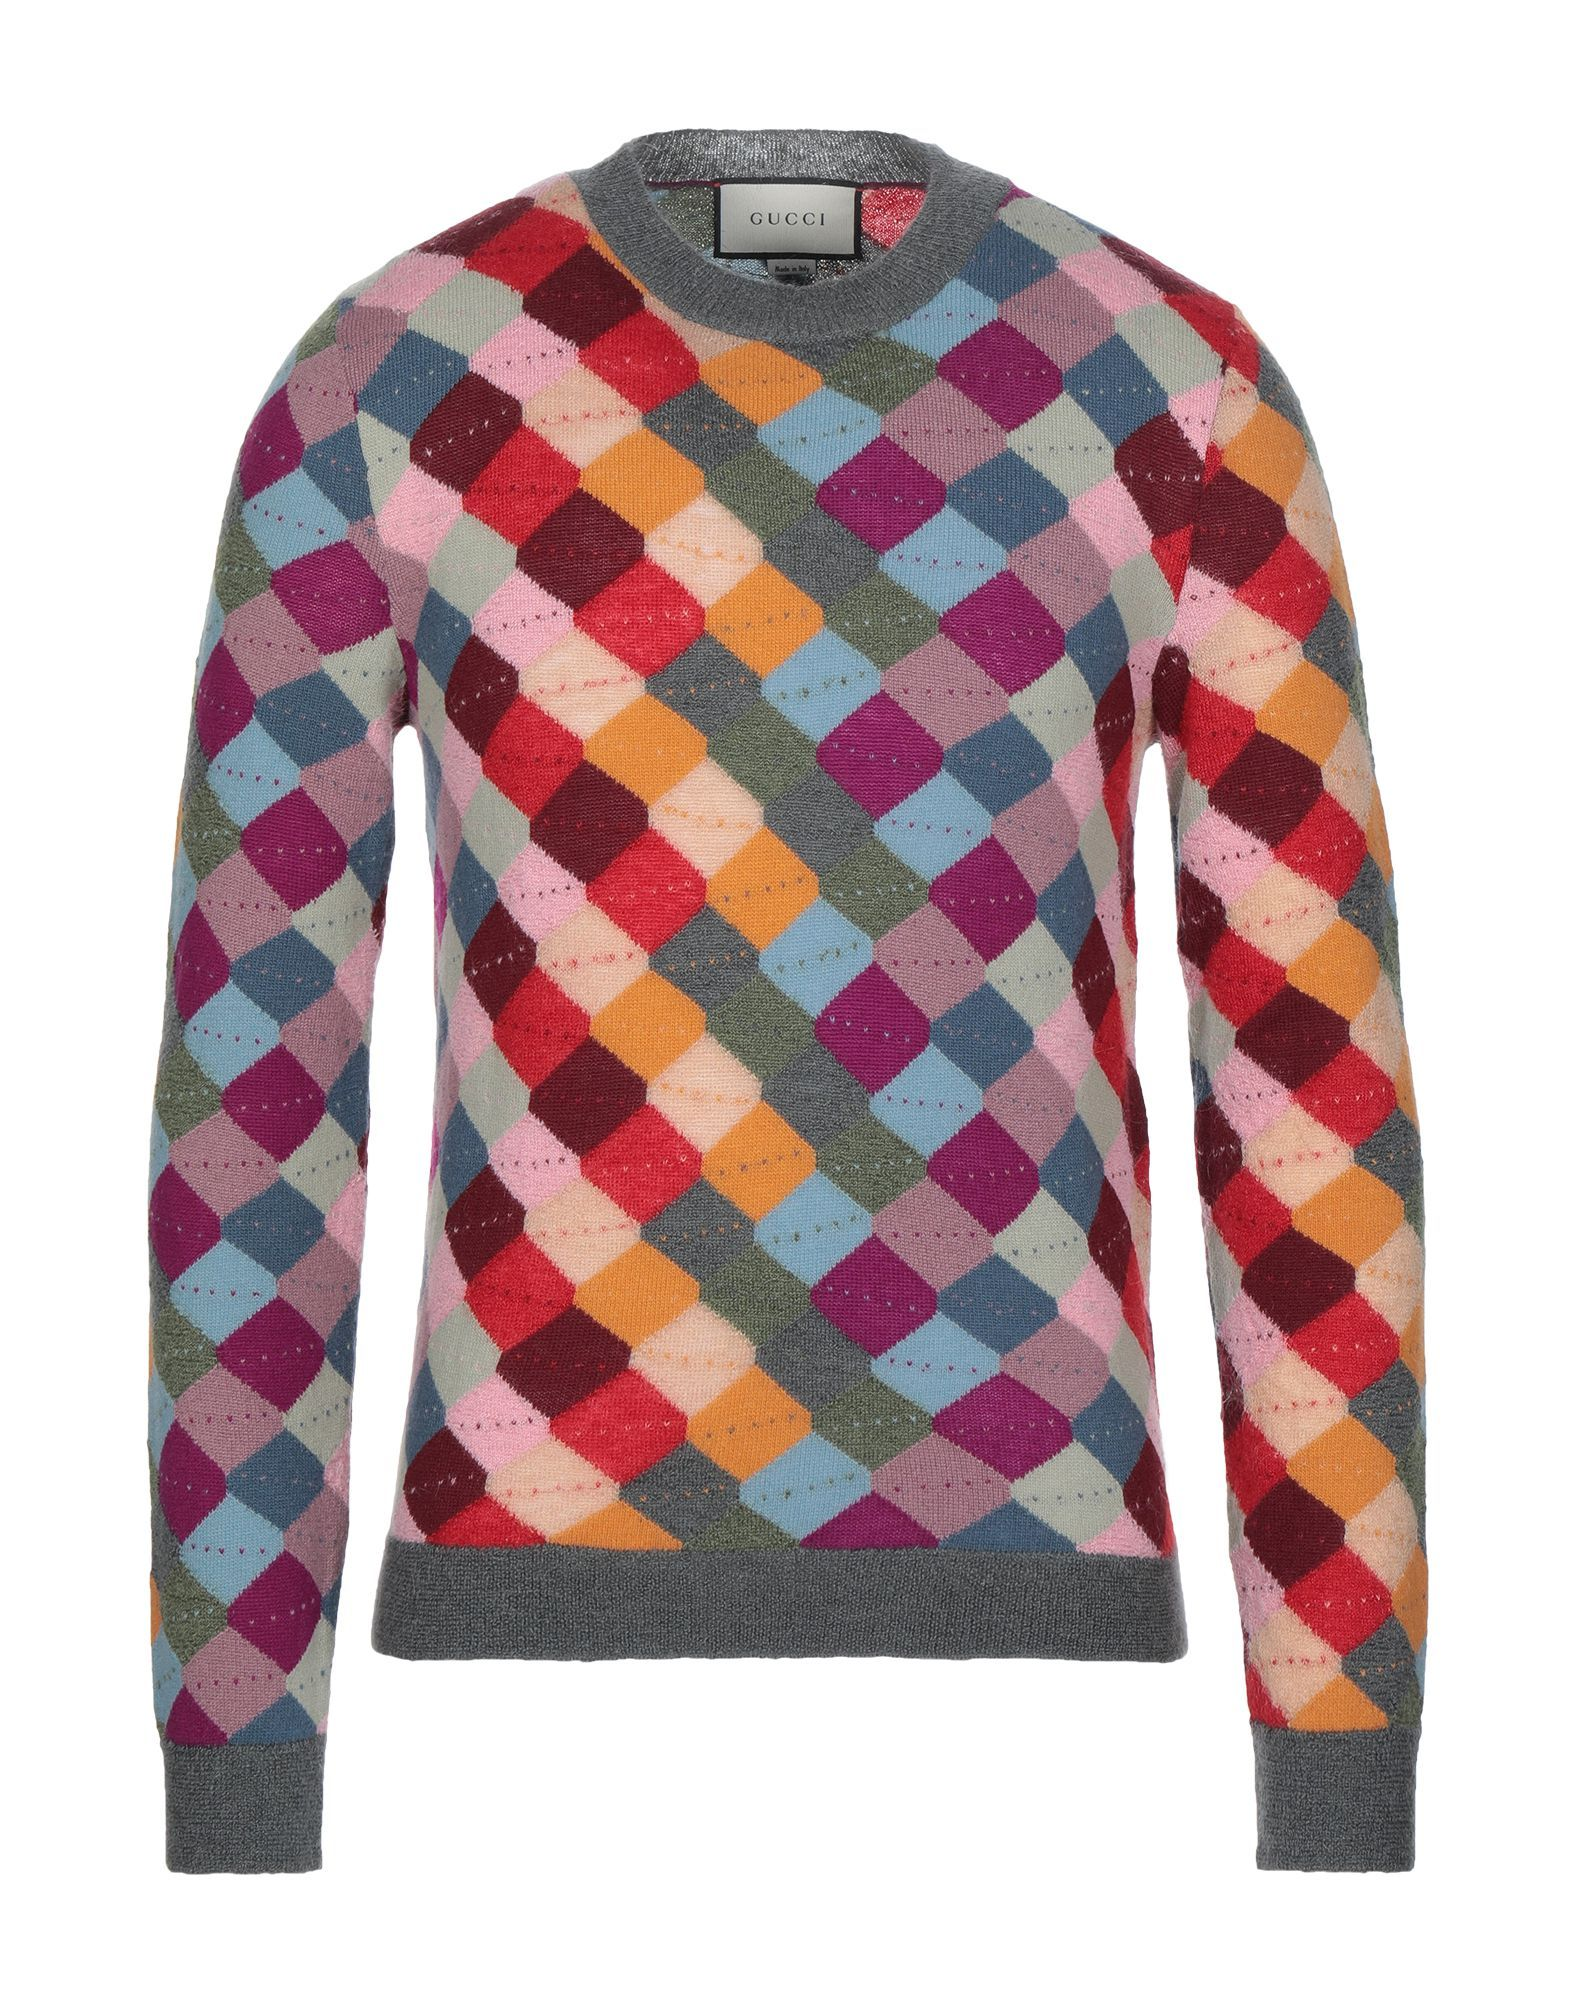 Gucci Ochre Geometric Design Mohair Wool Jumper